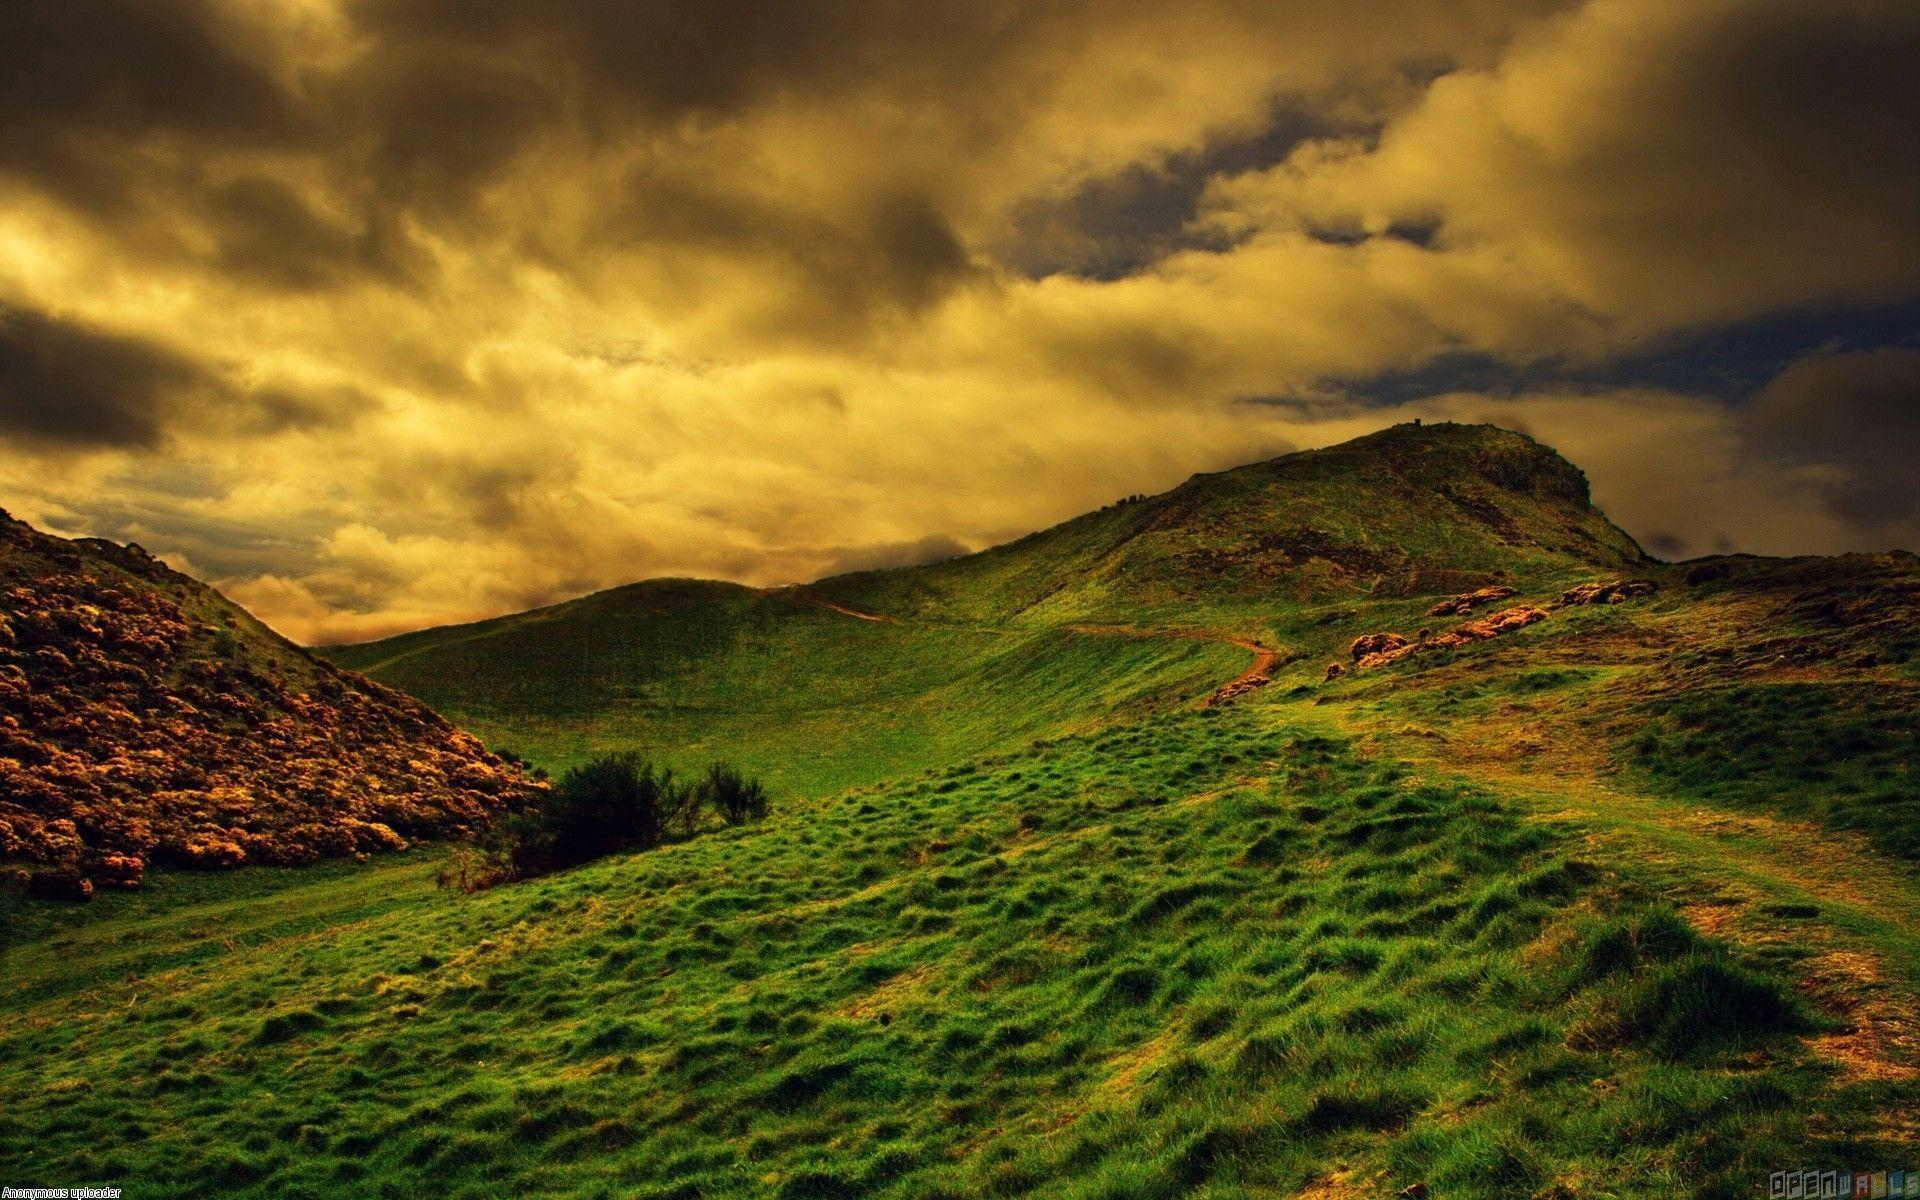 Green hills of scotland wallpaper #15871 - Open Walls